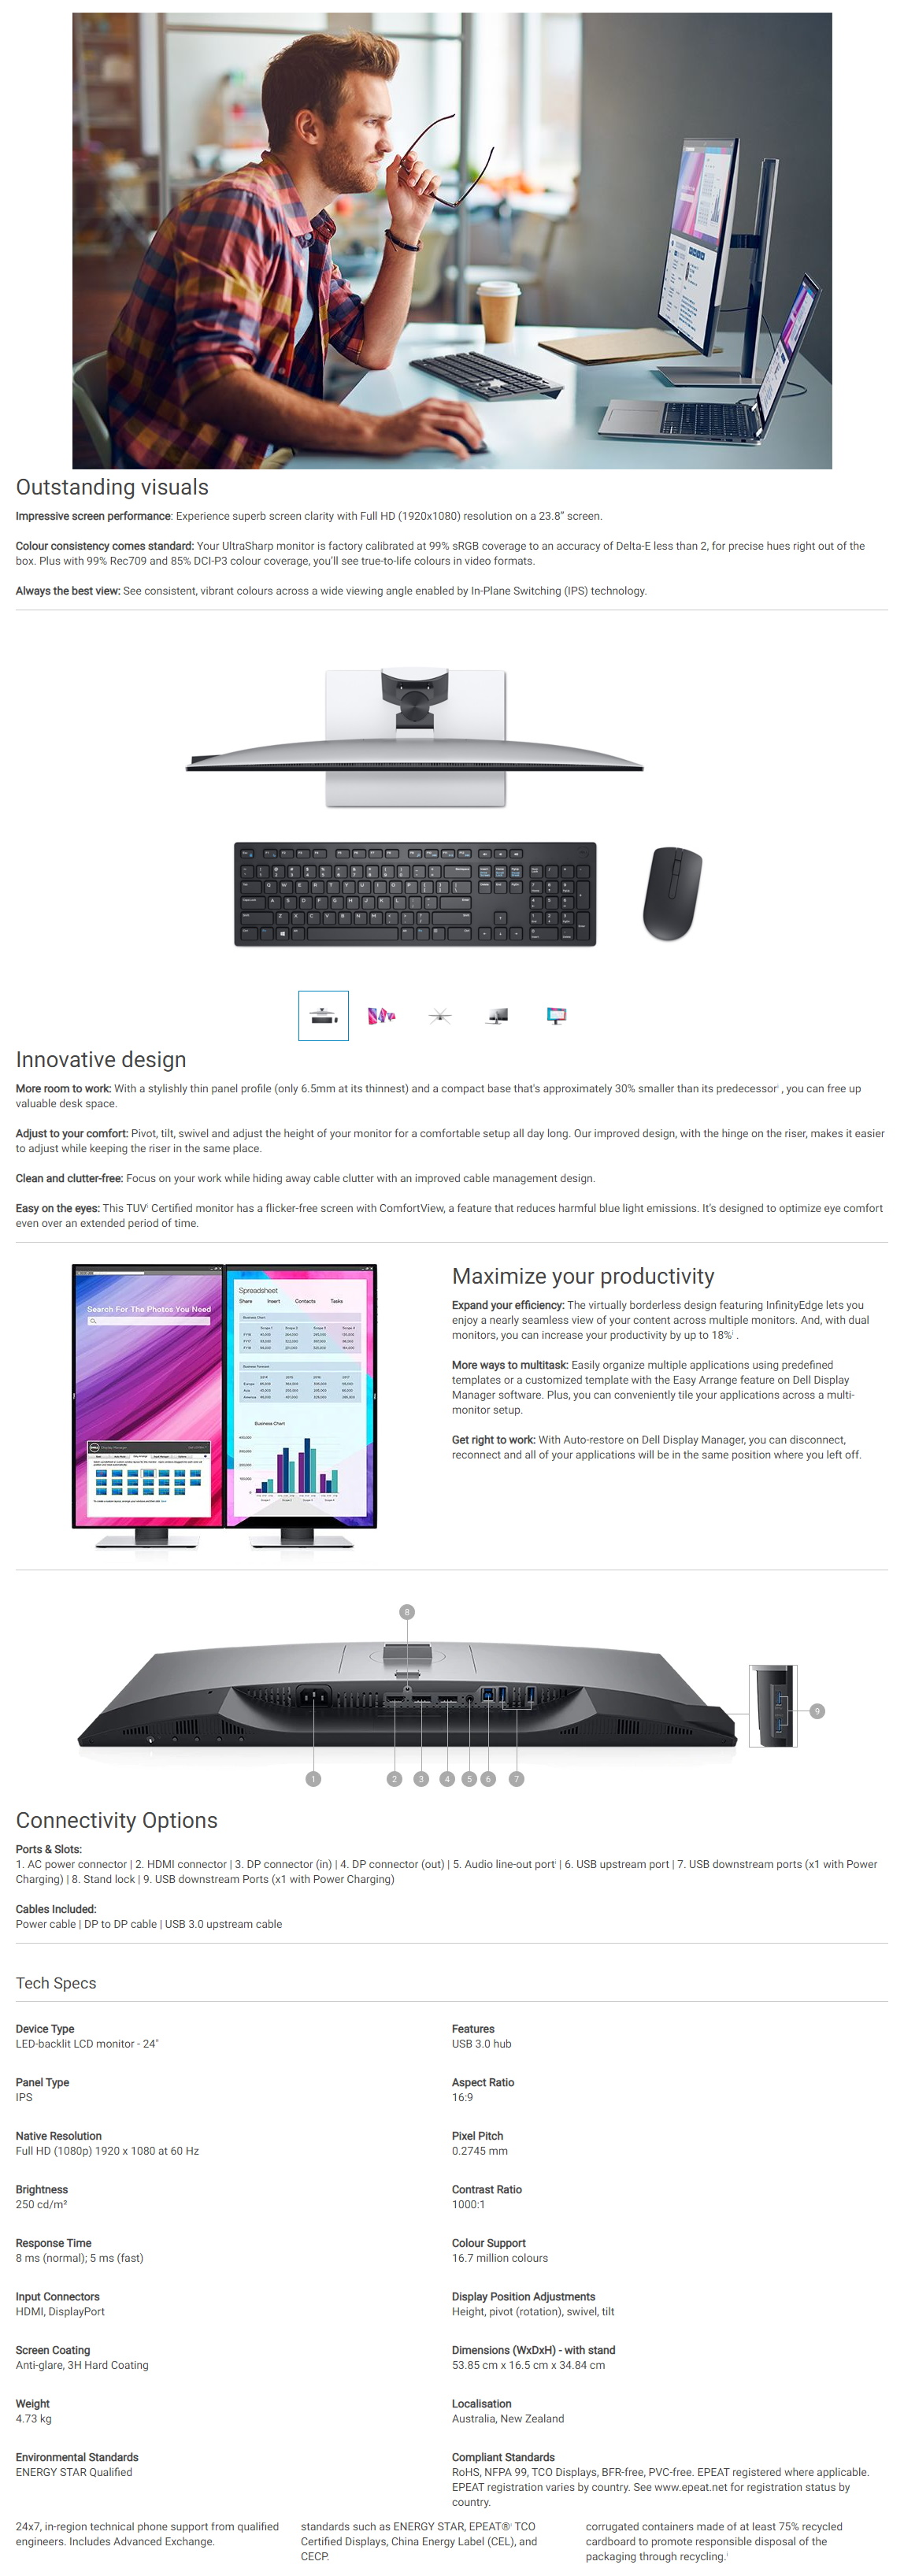 """A large marketing image providing additional information about the product Dell Ultrasharp U2419H 24"""" Full HD 8MS IPS LED Monitor - Additional alt info not provided"""